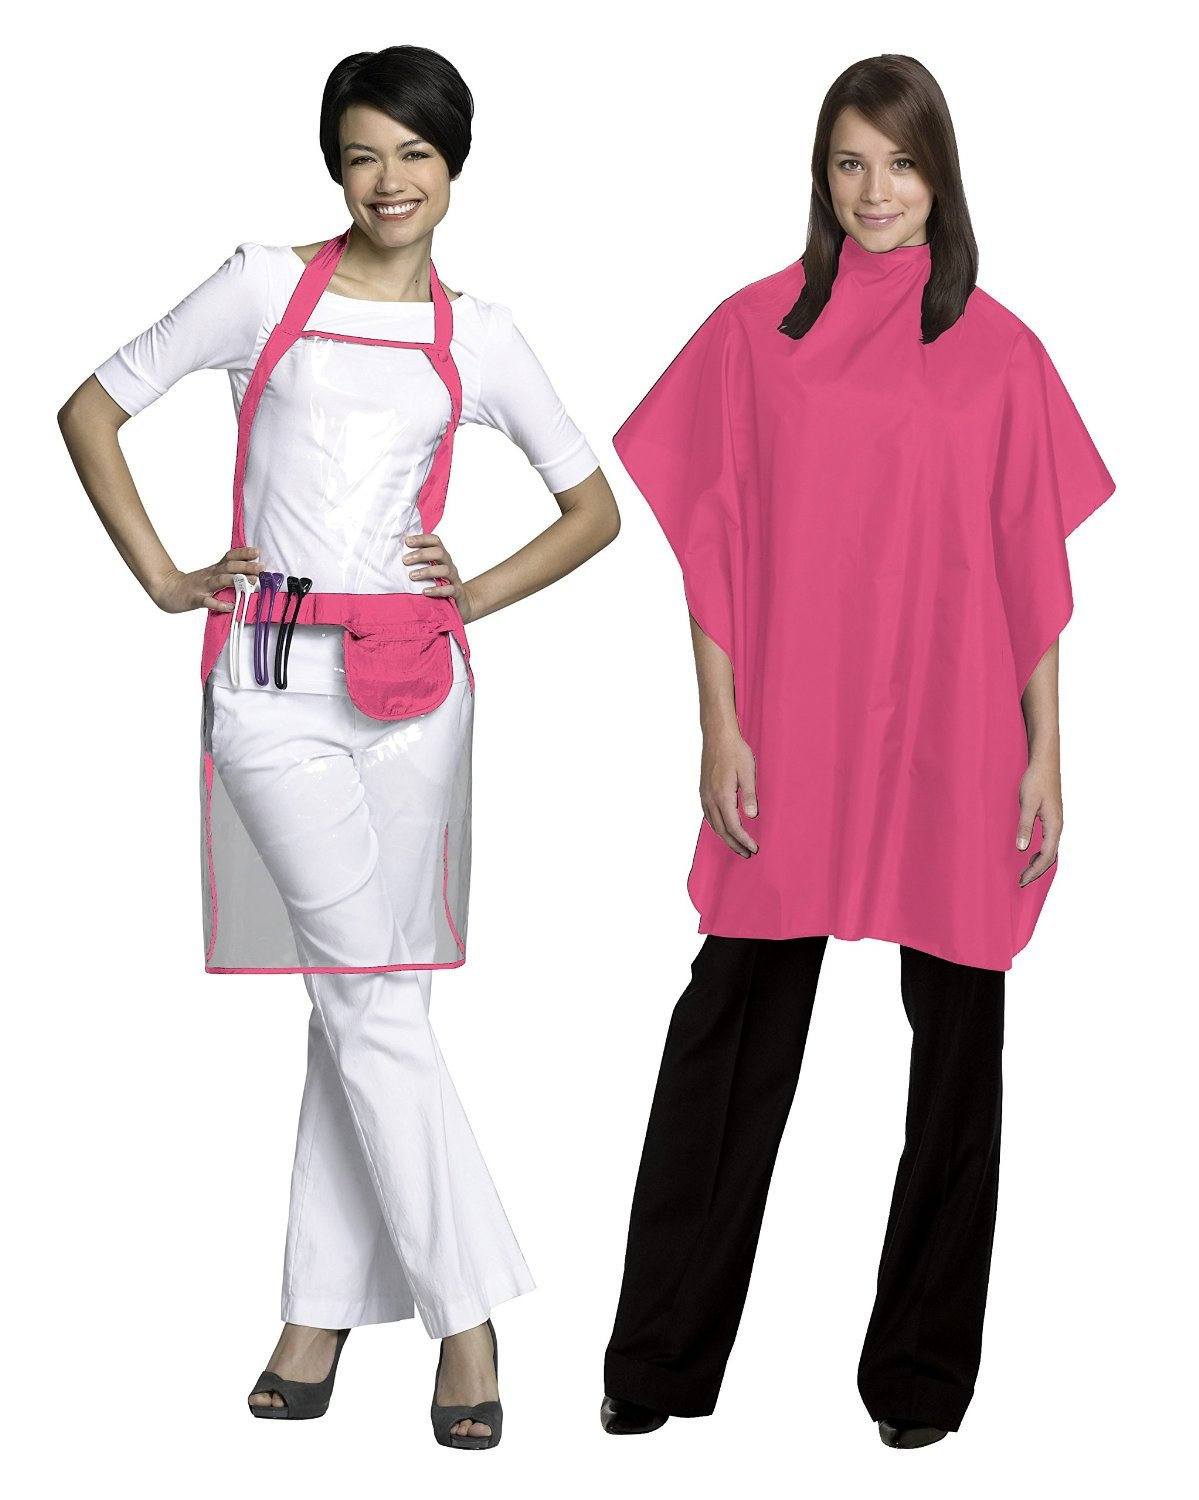 Fromm Chemical Cape and Apron Set, Pink, Water and Chemical Resistant, Chemical Proof Button Closure and Ties, Shampoo and Haircut cape, Storage to hold shears, Clear Vinyl, Allpurpose Cape, 36 inches by 54 inches, Nylon Mate